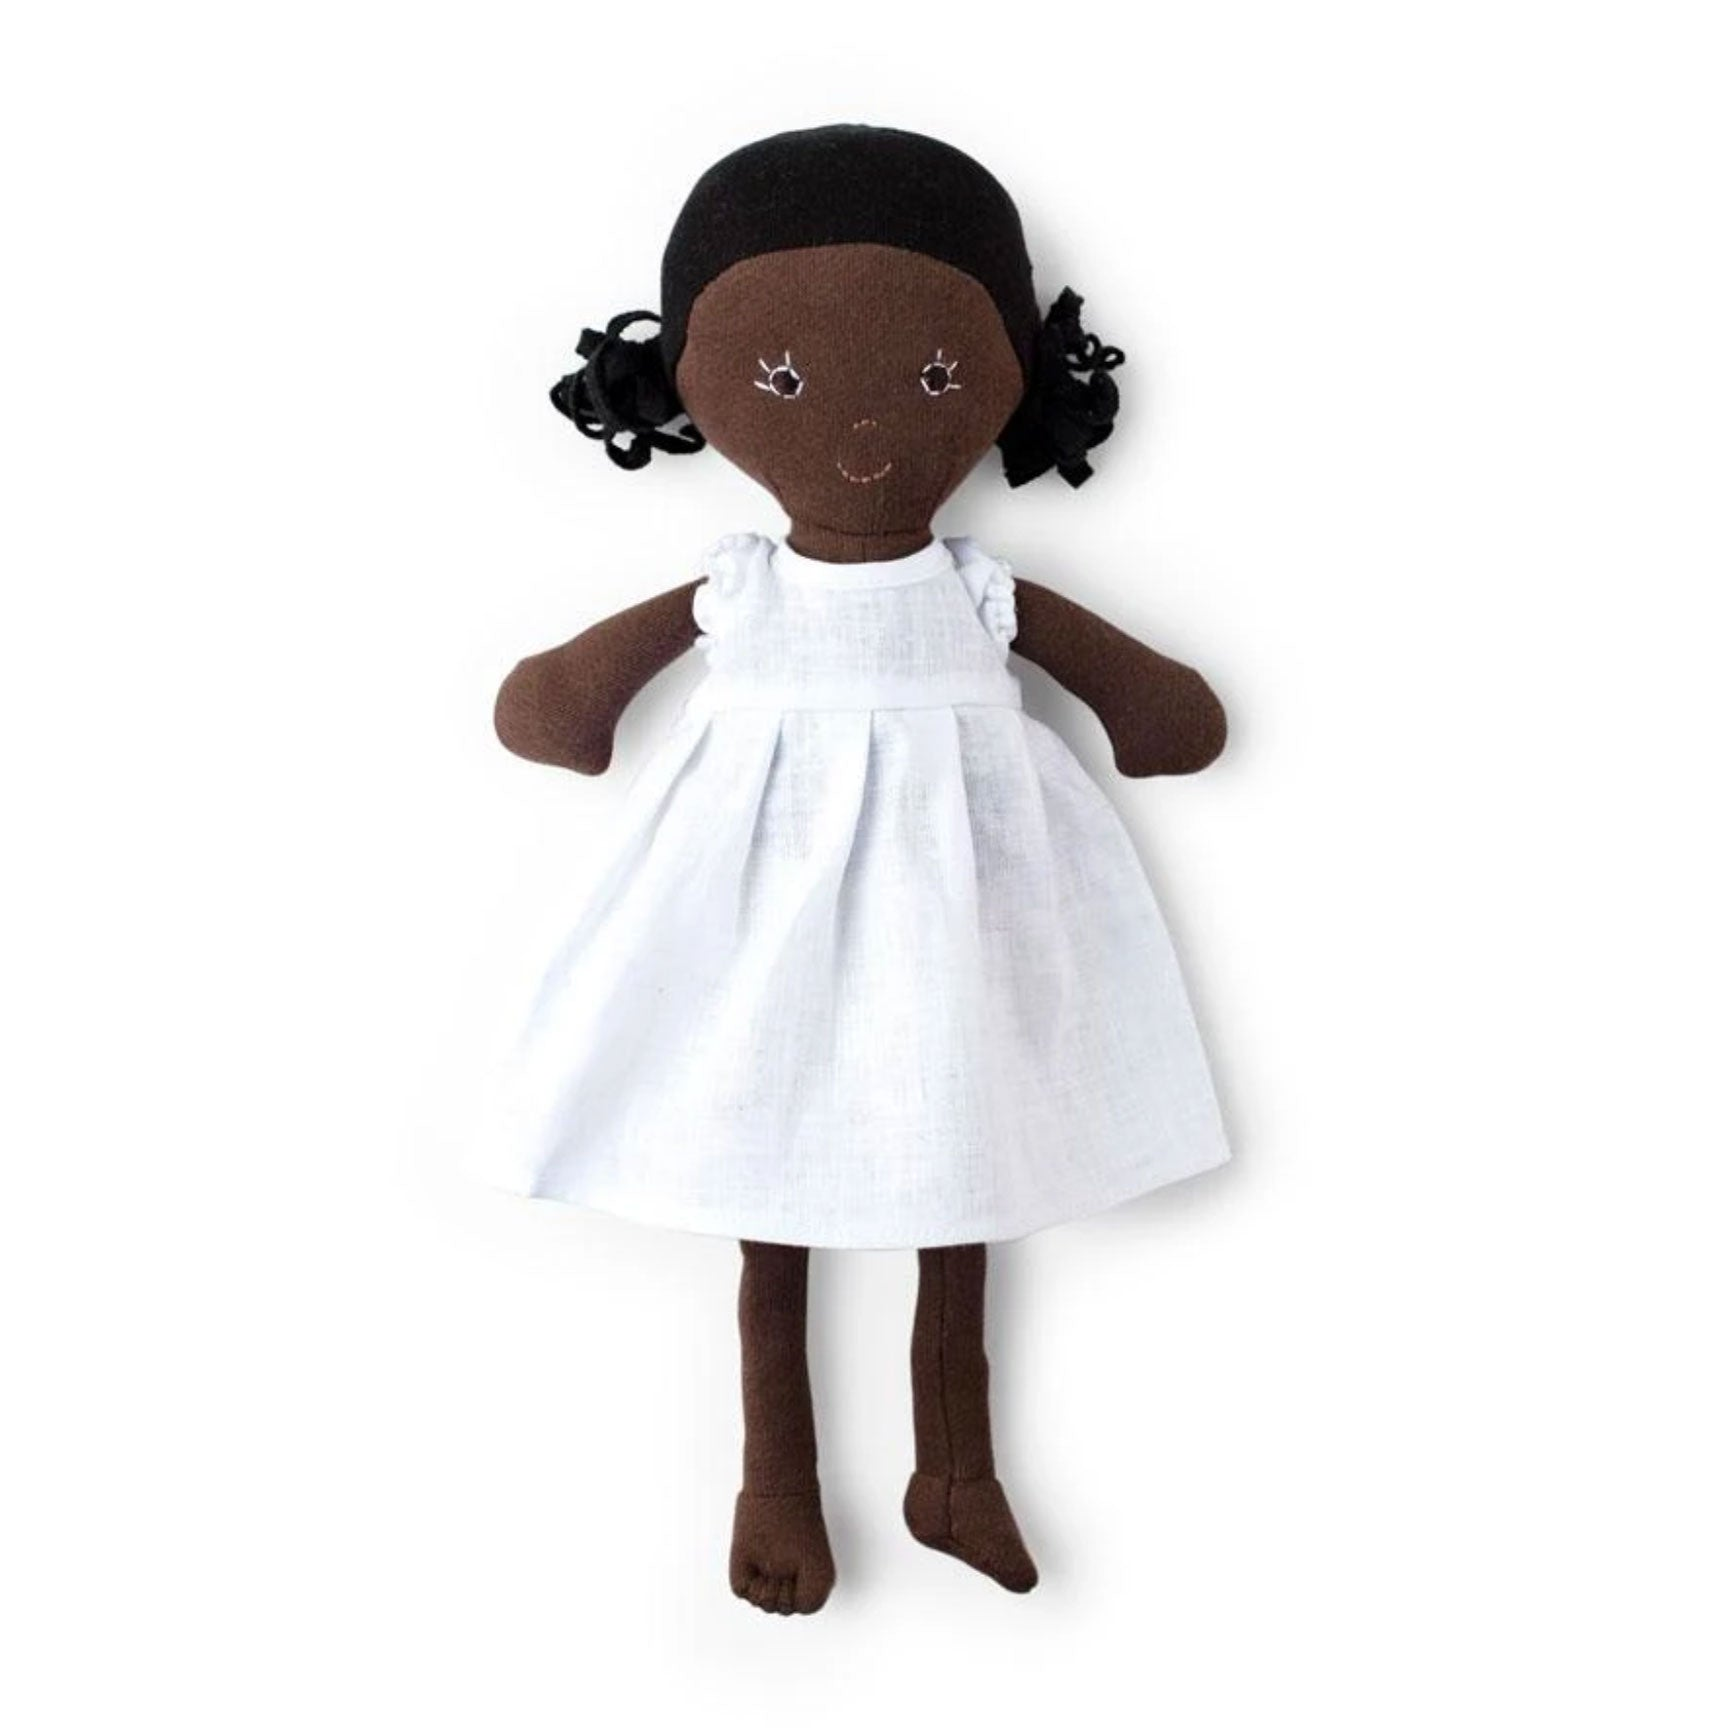 Hazel Village Ada soft doll at Bonjour Baby Baskets, luxury baby gifts